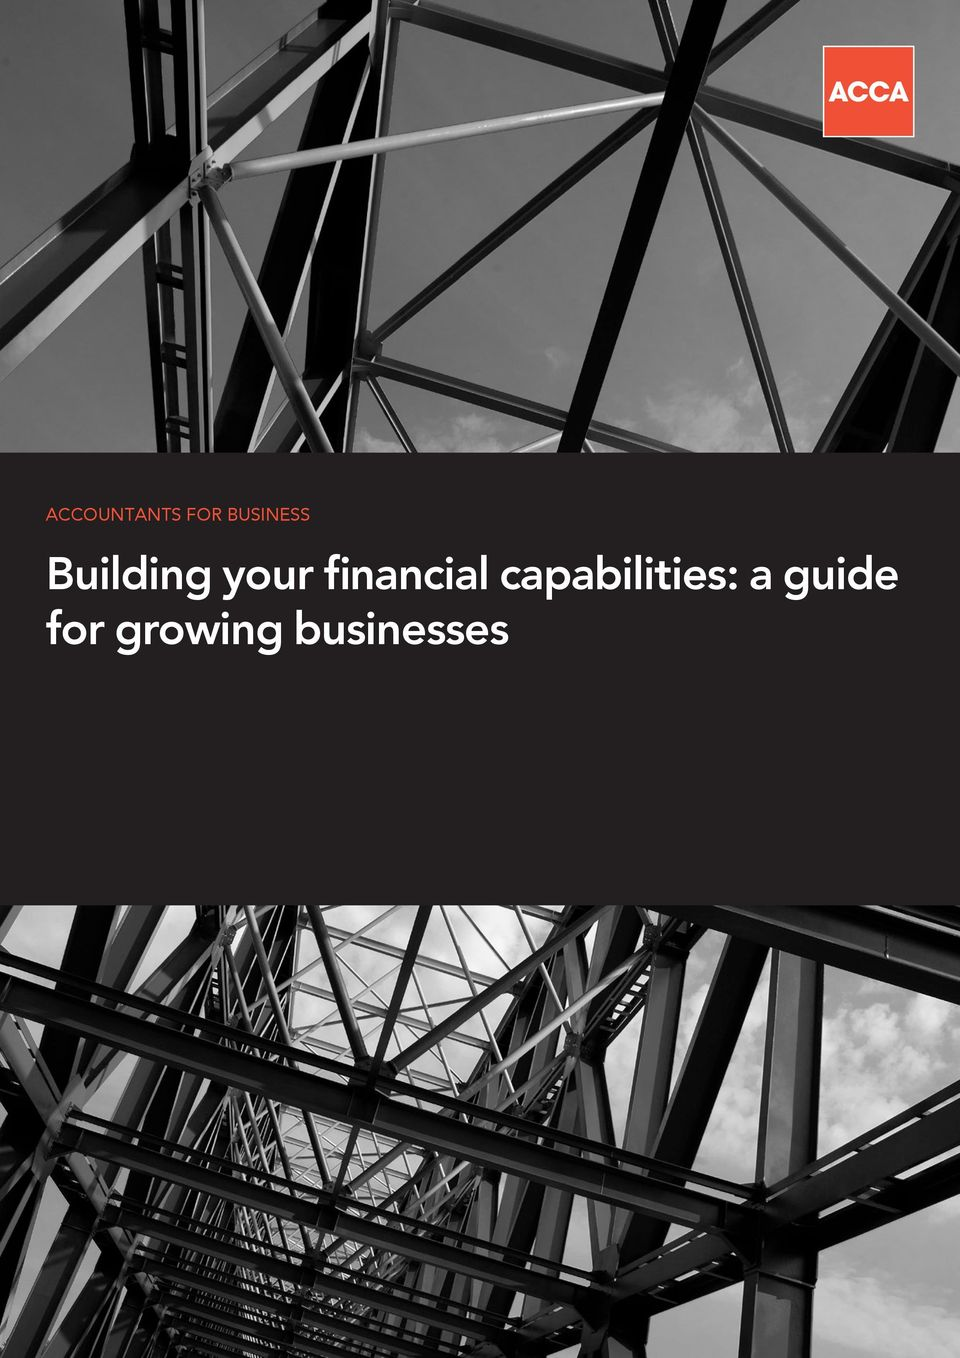 financial capabilities: